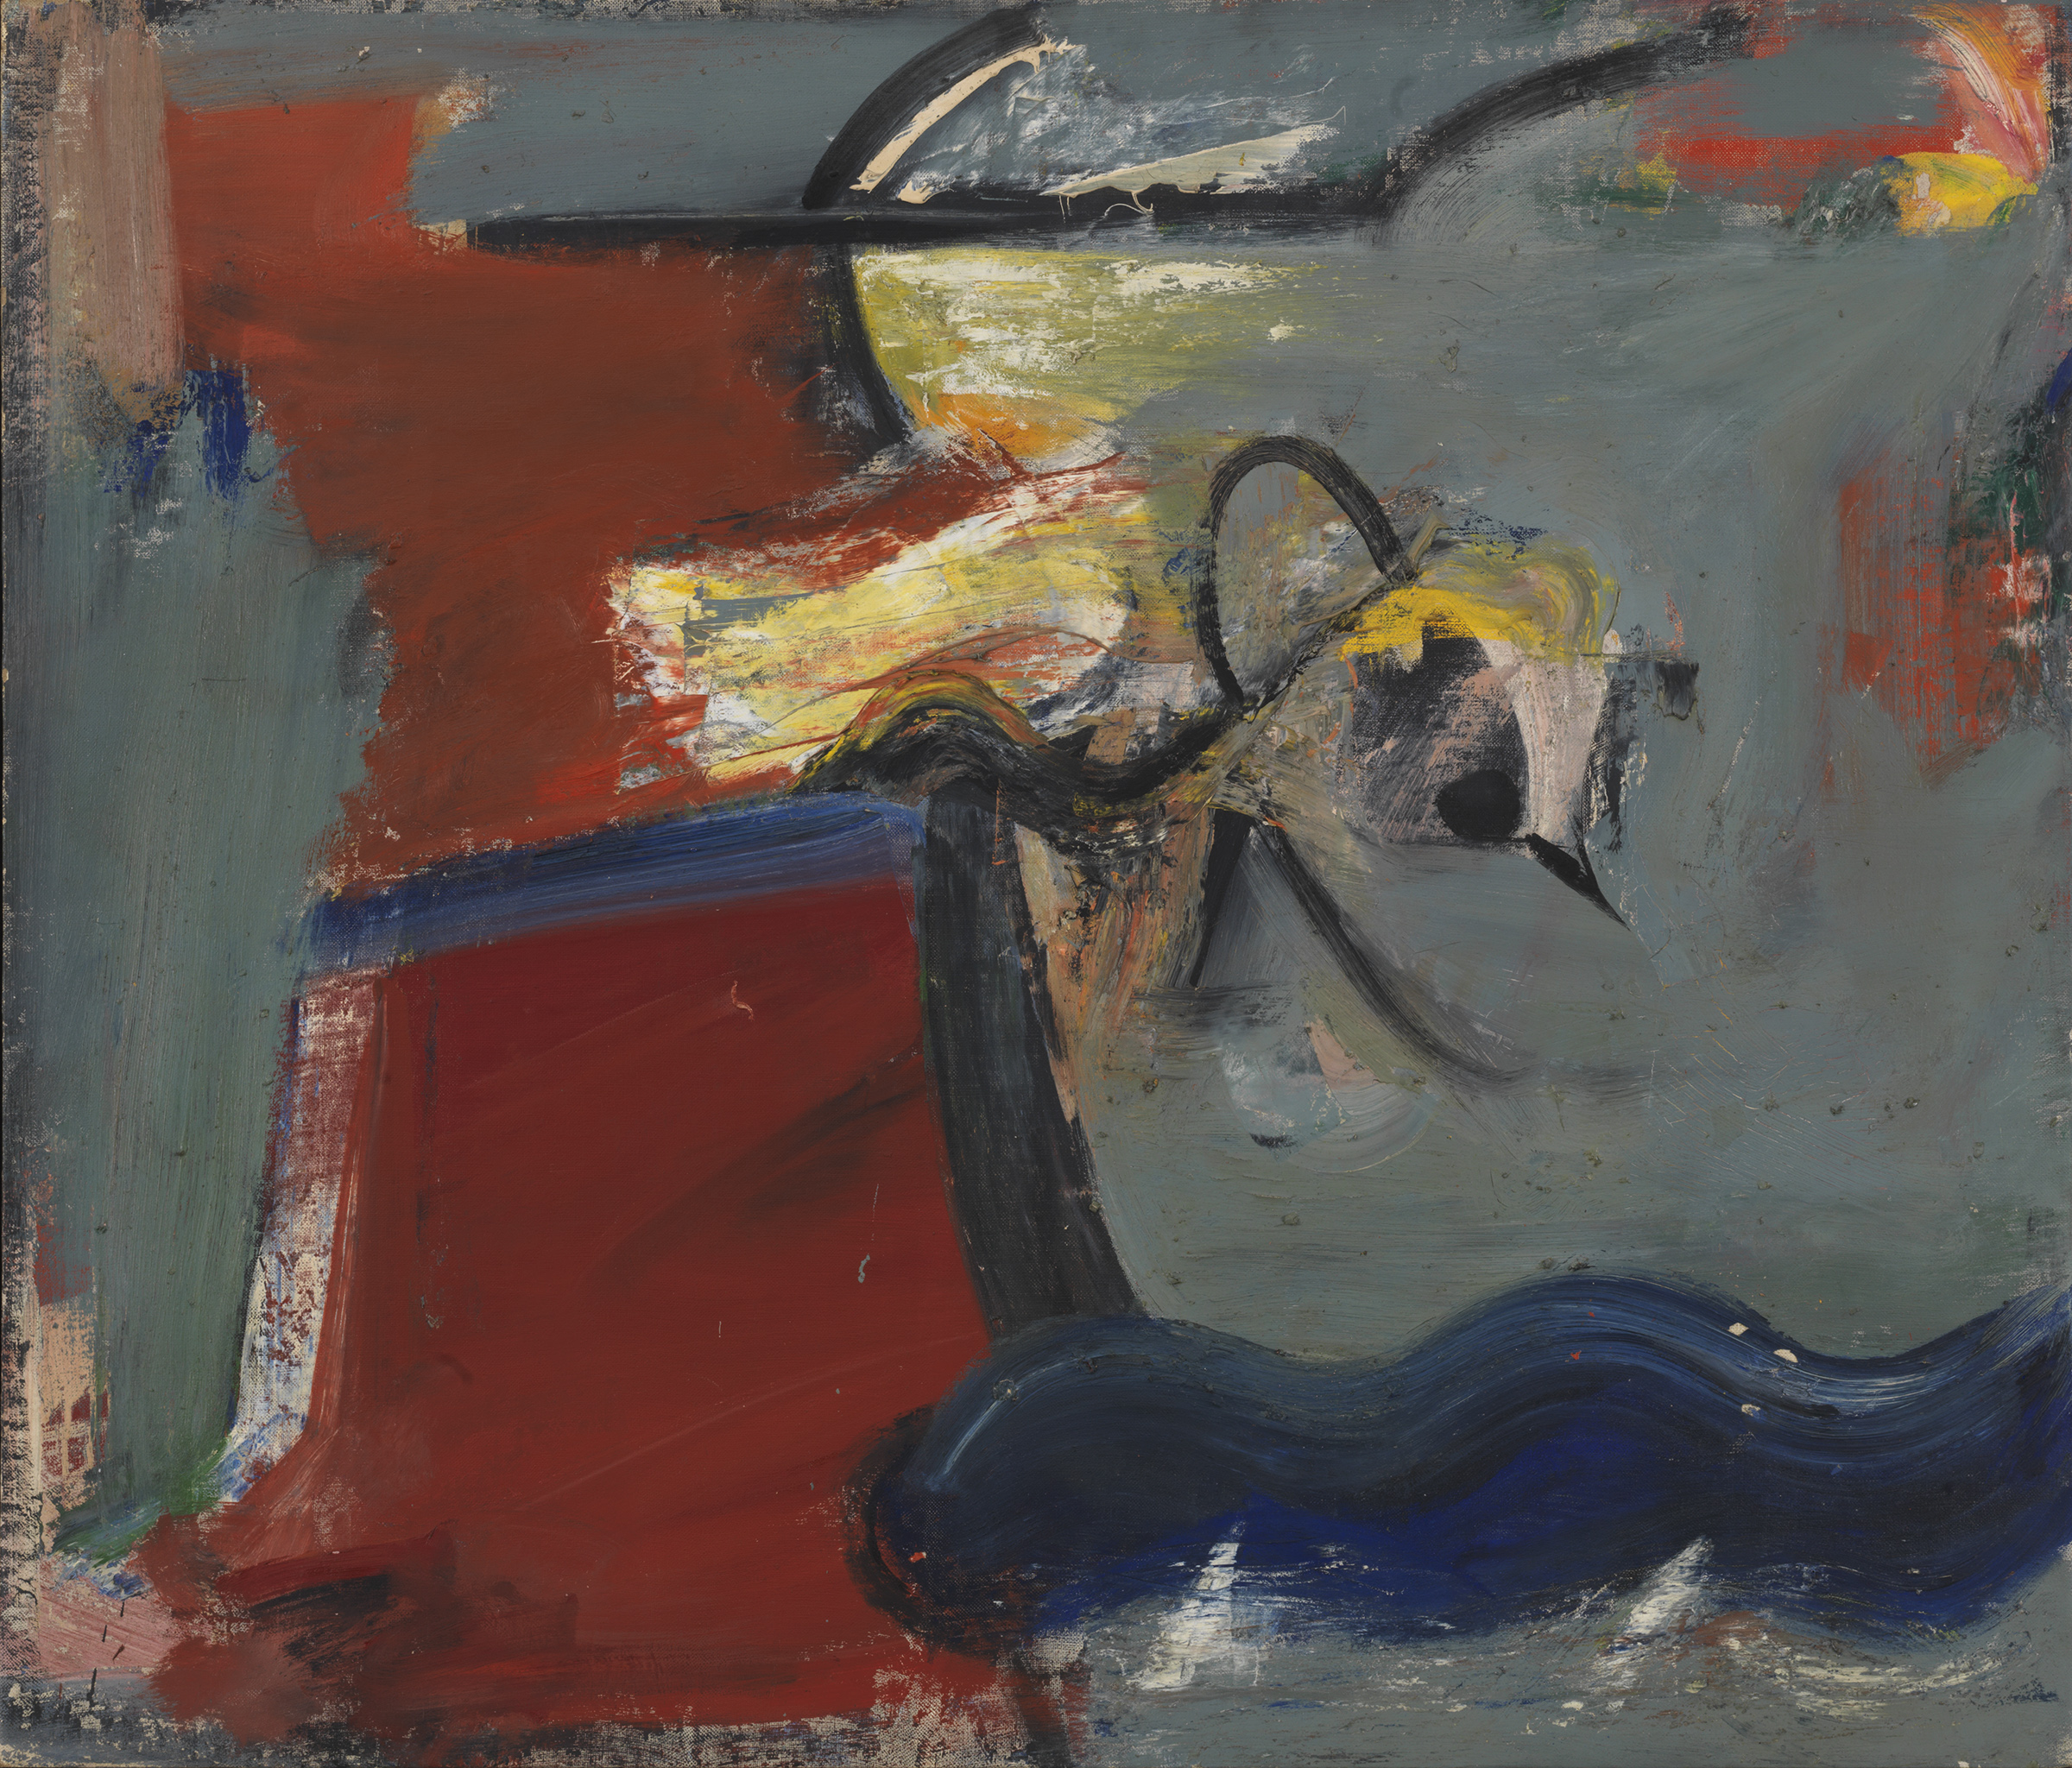 Pat Passlof  March Bird , 1956 Oil on linen 37 x 44 inches